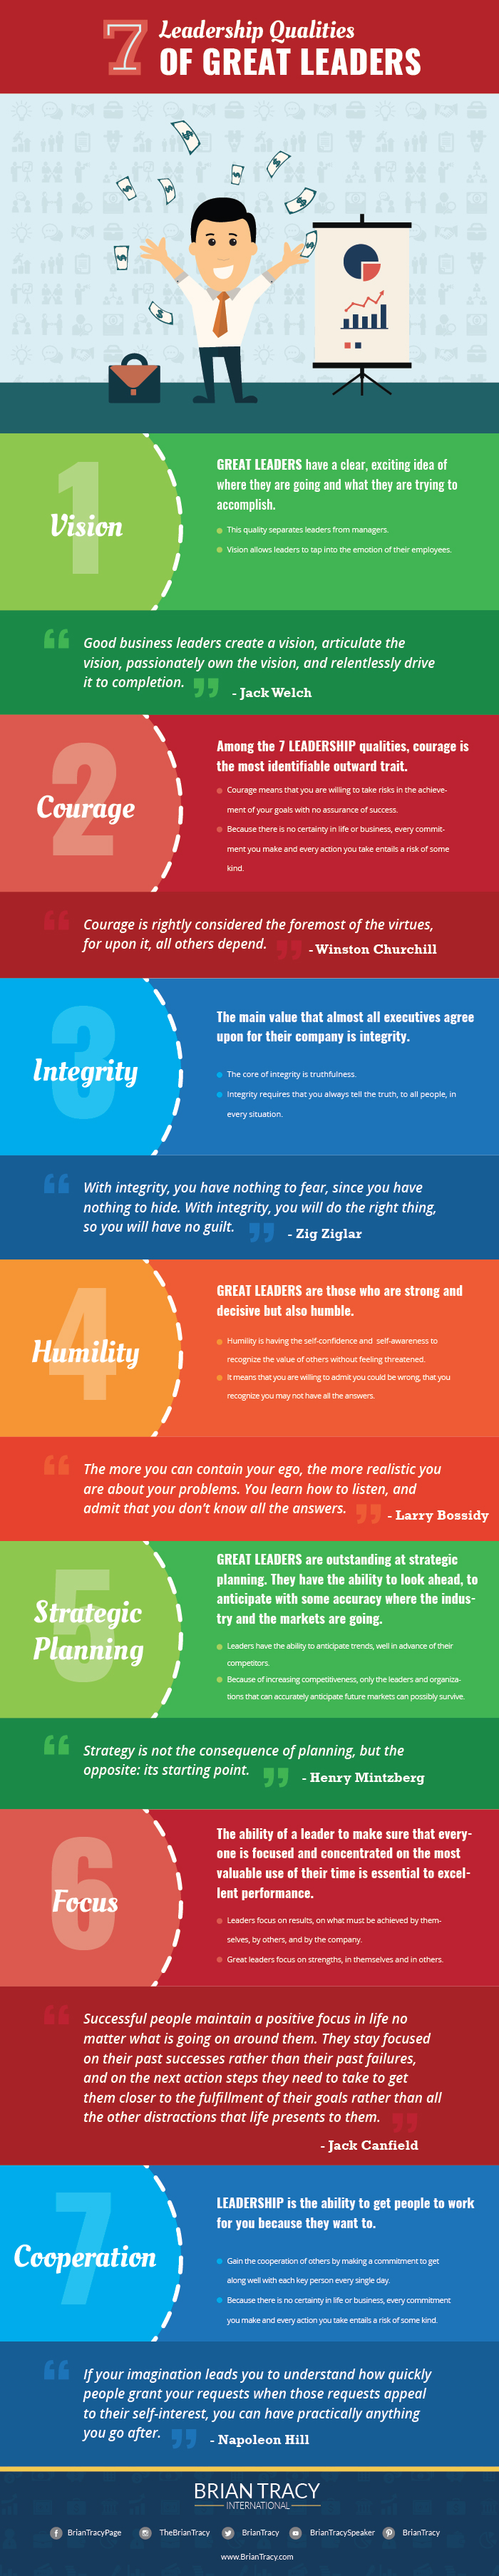 characteristics of a good leader essay leadership definition essay  the best leadership qualities infographic brian tracy see the full size infographic here good citizen essay responsibilities